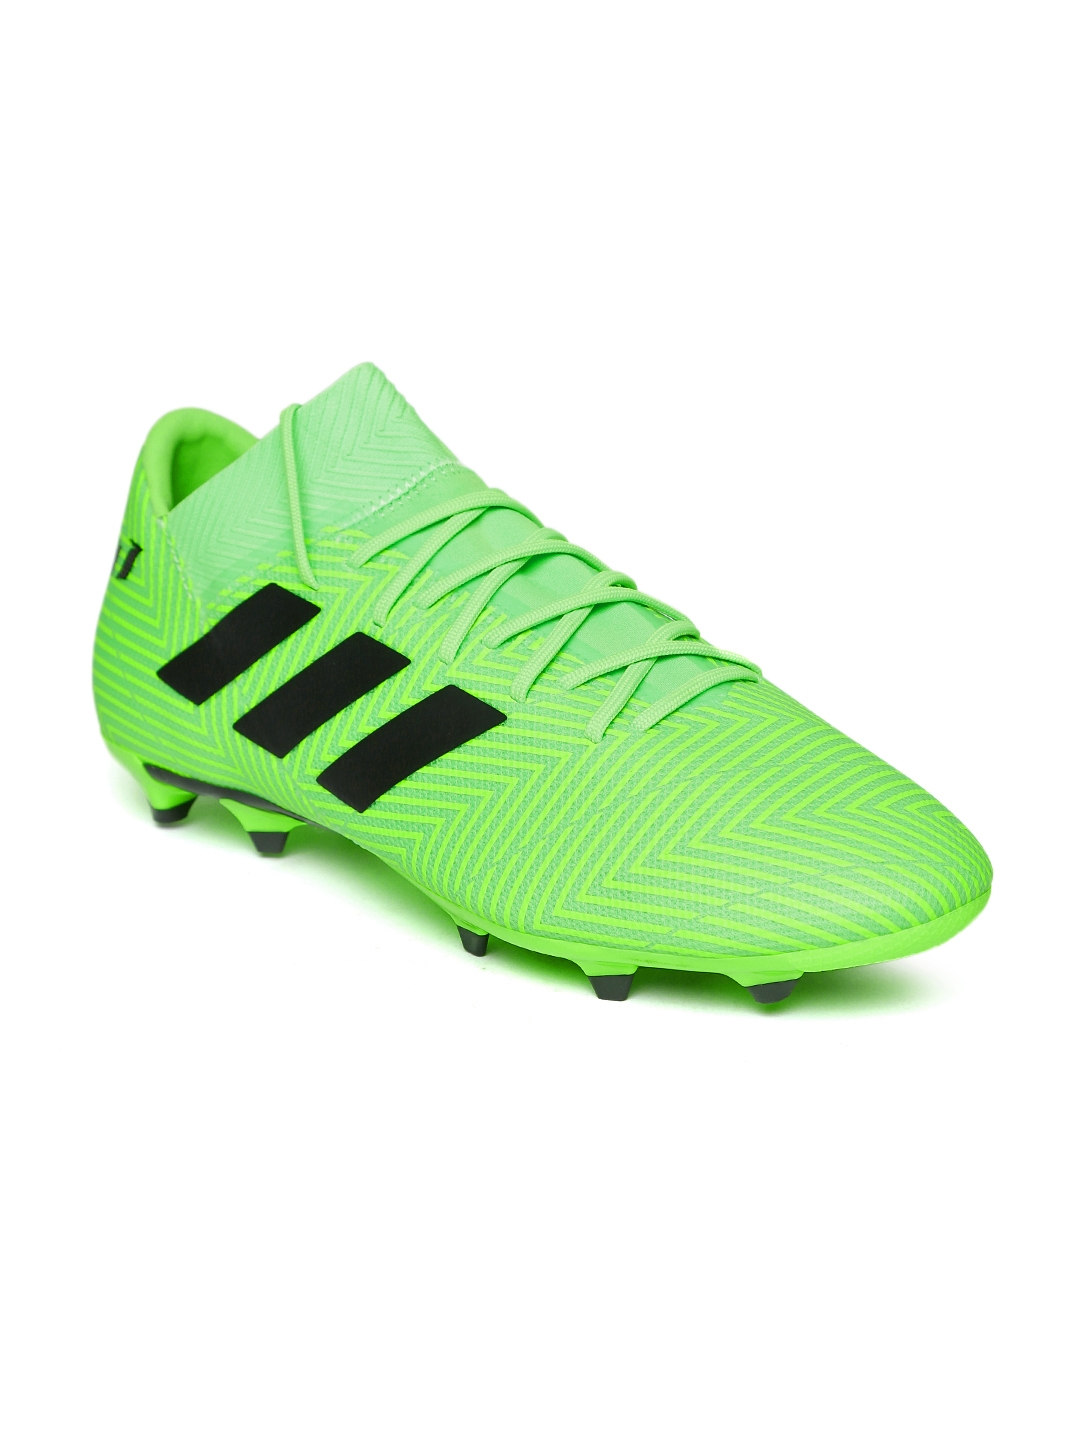 d631357667f Buy ADIDAS Men Fluorescent Green NEMEZIZ Messi 18.3 FG Football ...